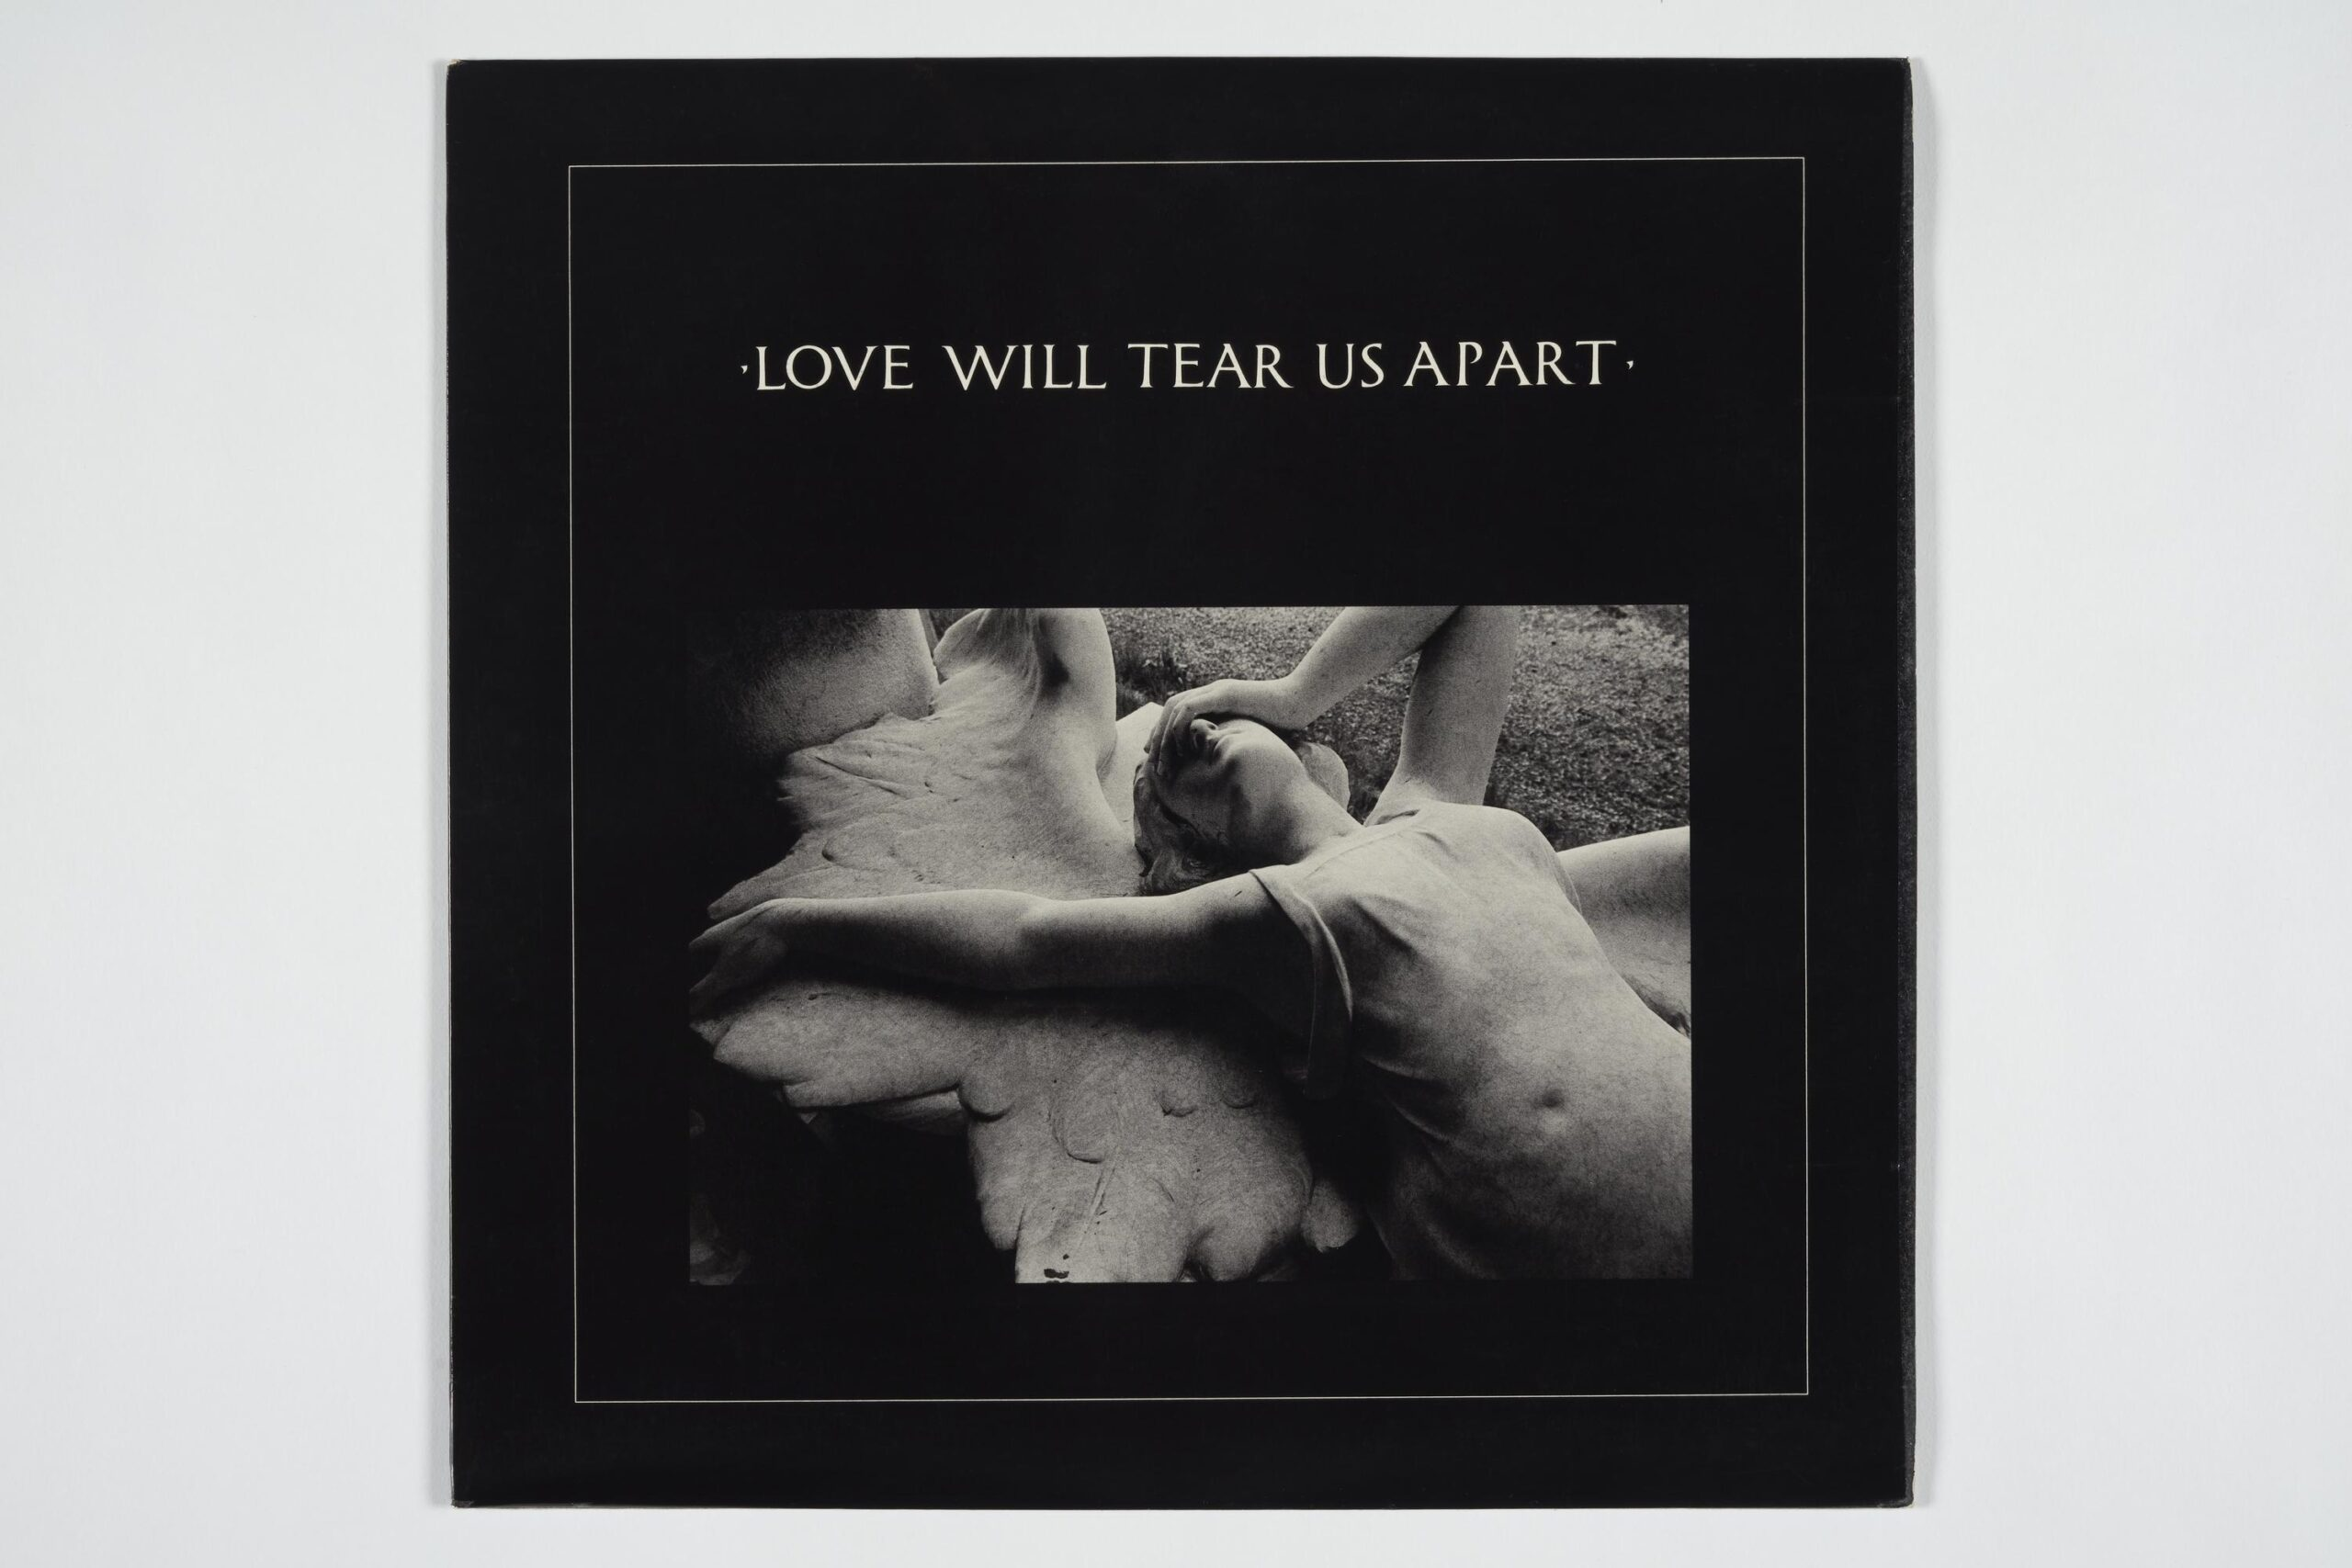 """Fac 23 - Joy Division - Love Will Tear Us Apart 12"""" single in picture sleeve. Copyright Contact Details © The Board of Trustees of the Science Museum"""